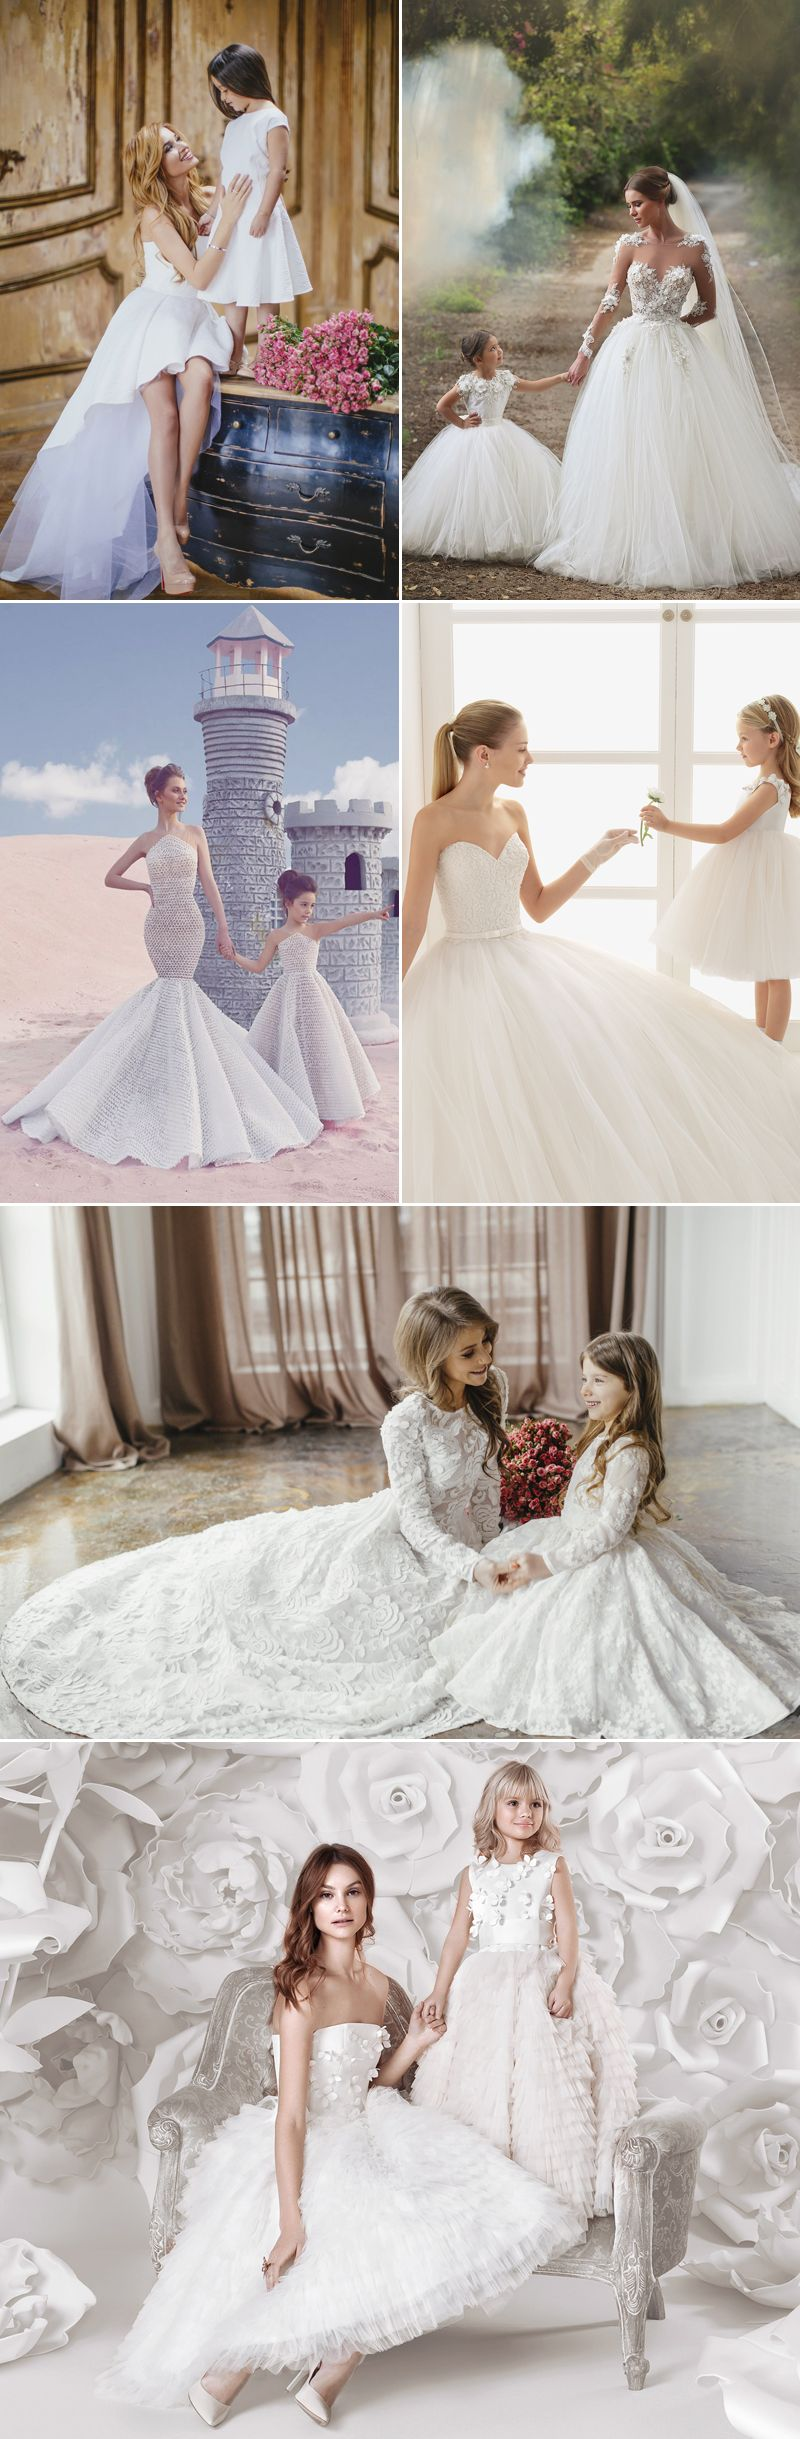 82739044787 Here Comes the Mini Bride! Adorable Matching Gowns for The Bride and Her  Flower Girl!